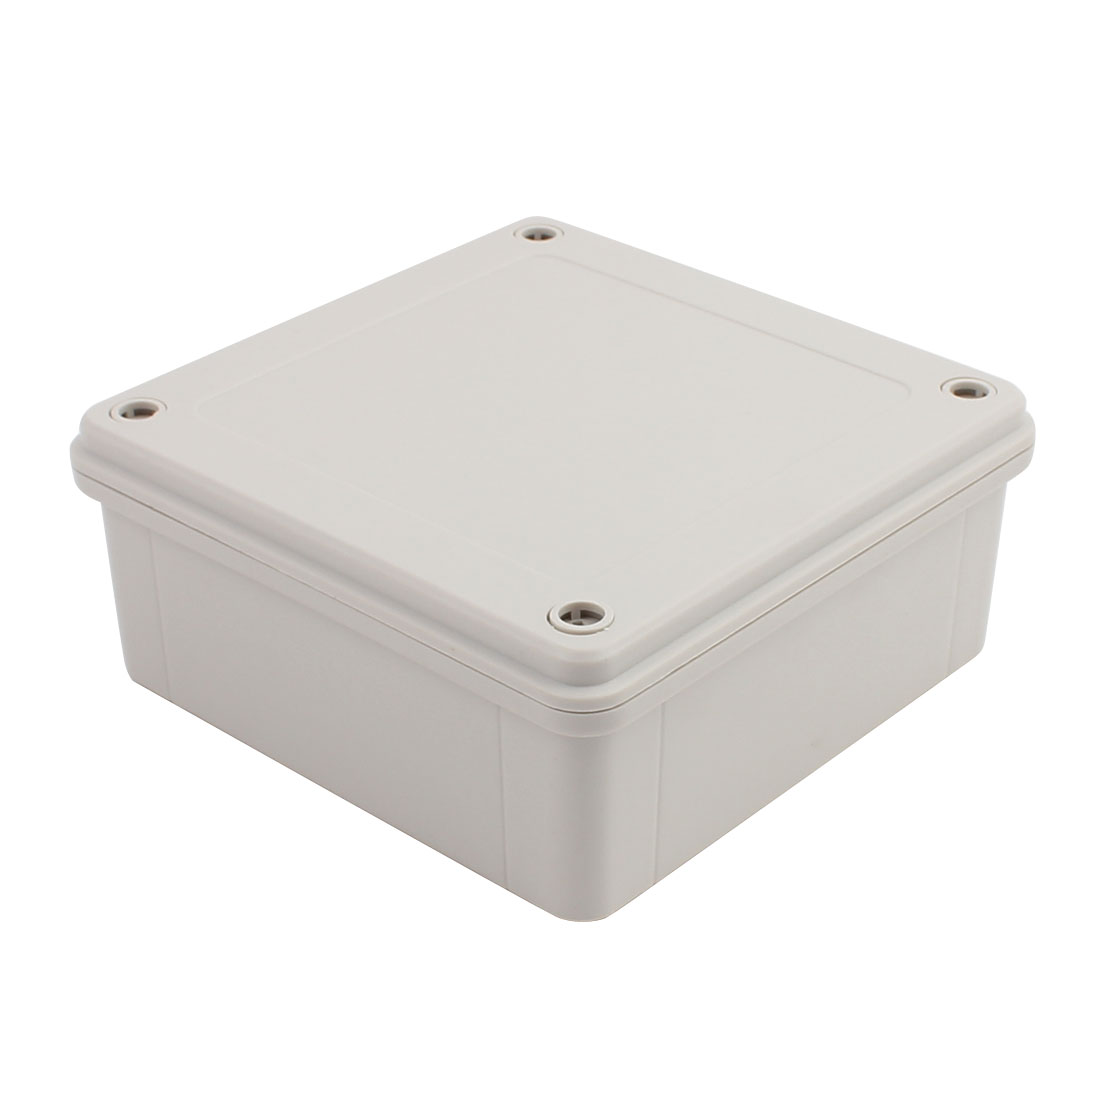 145mm x 145mm x 60mm ABS Enclosure DIY Junction Box Case Gray